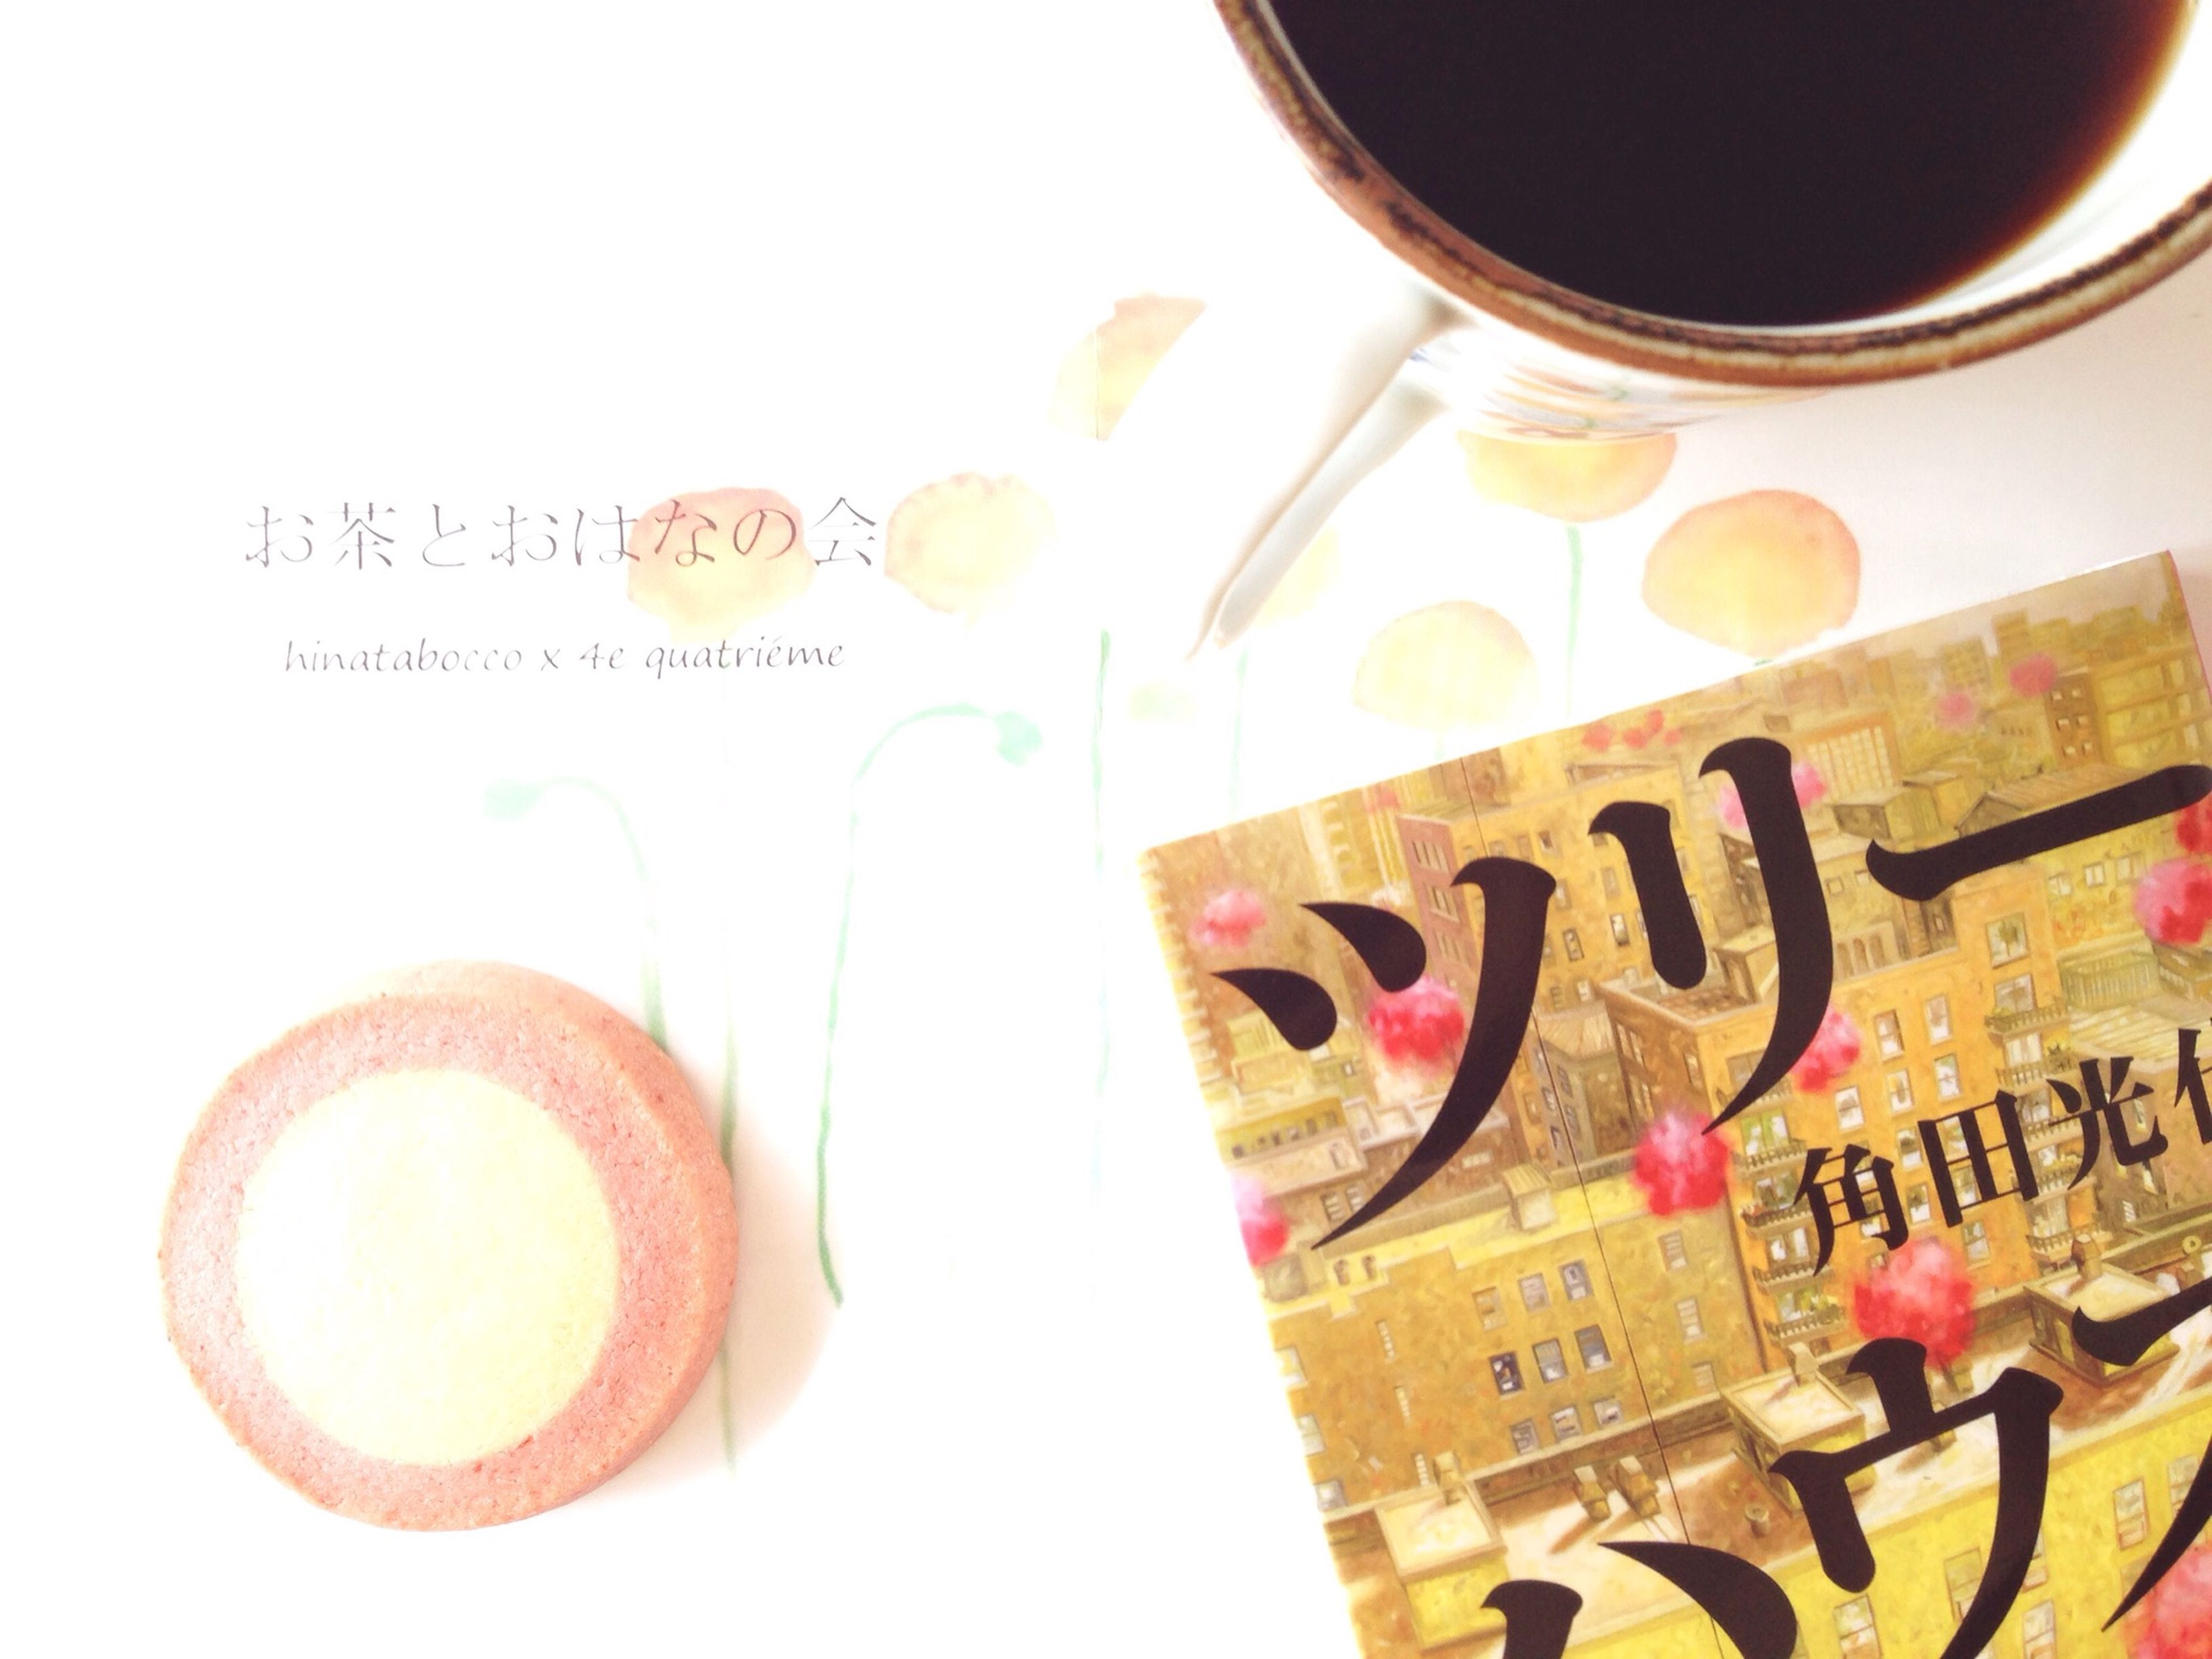 text, western script, communication, indoors, food and drink, still life, drink, close-up, table, freshness, coffee cup, number, refreshment, paper, no people, capital letter, high angle view, food, coffee - drink, information